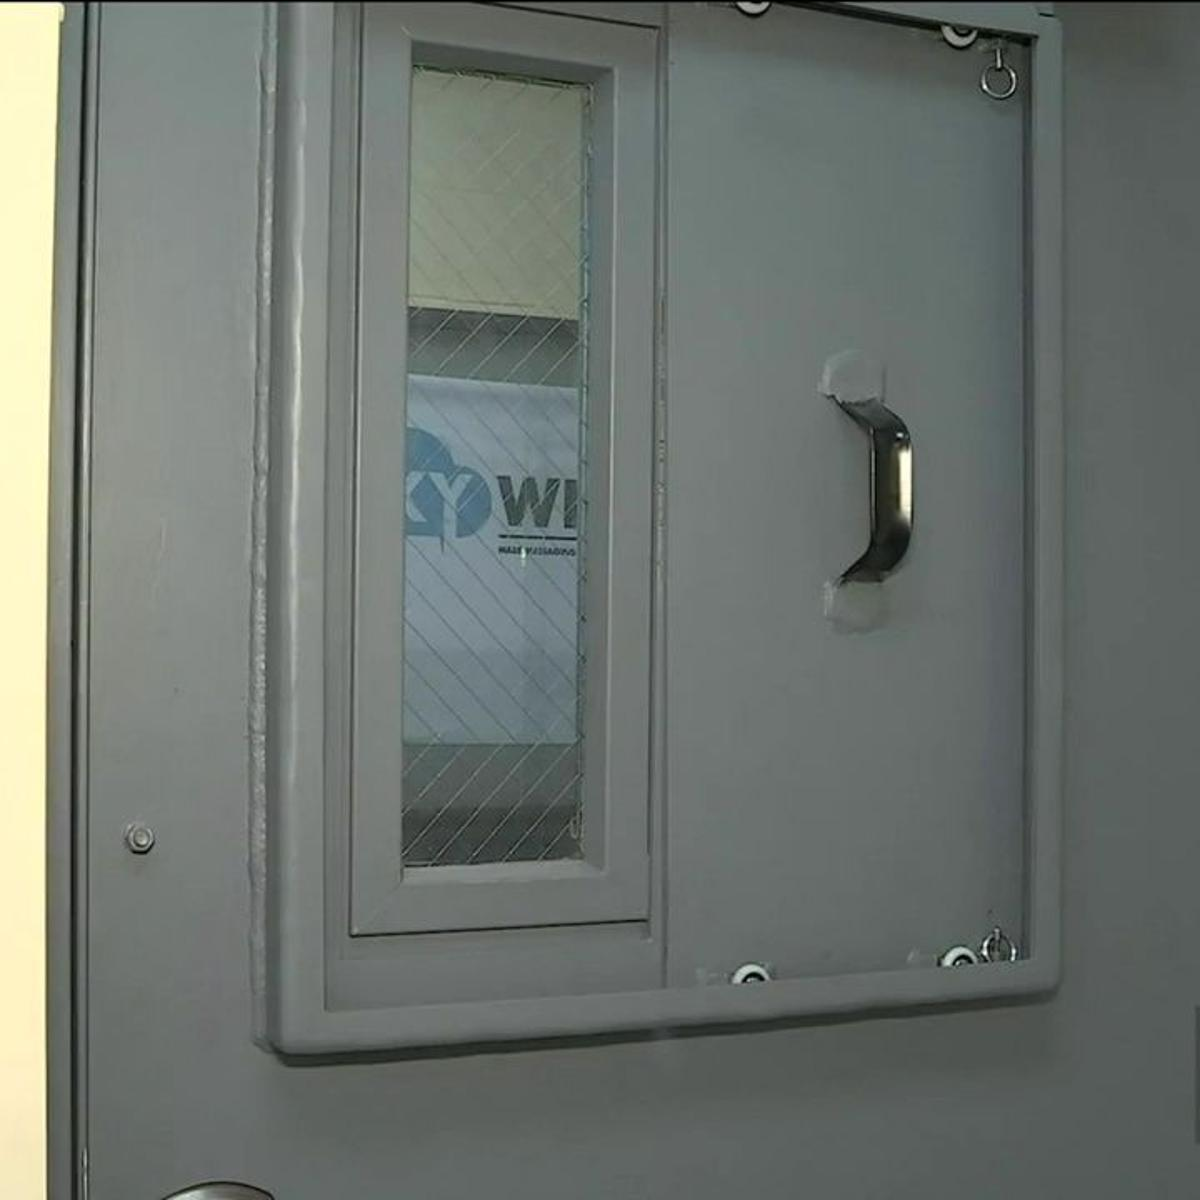 CT company creates unique products for school, workplace security